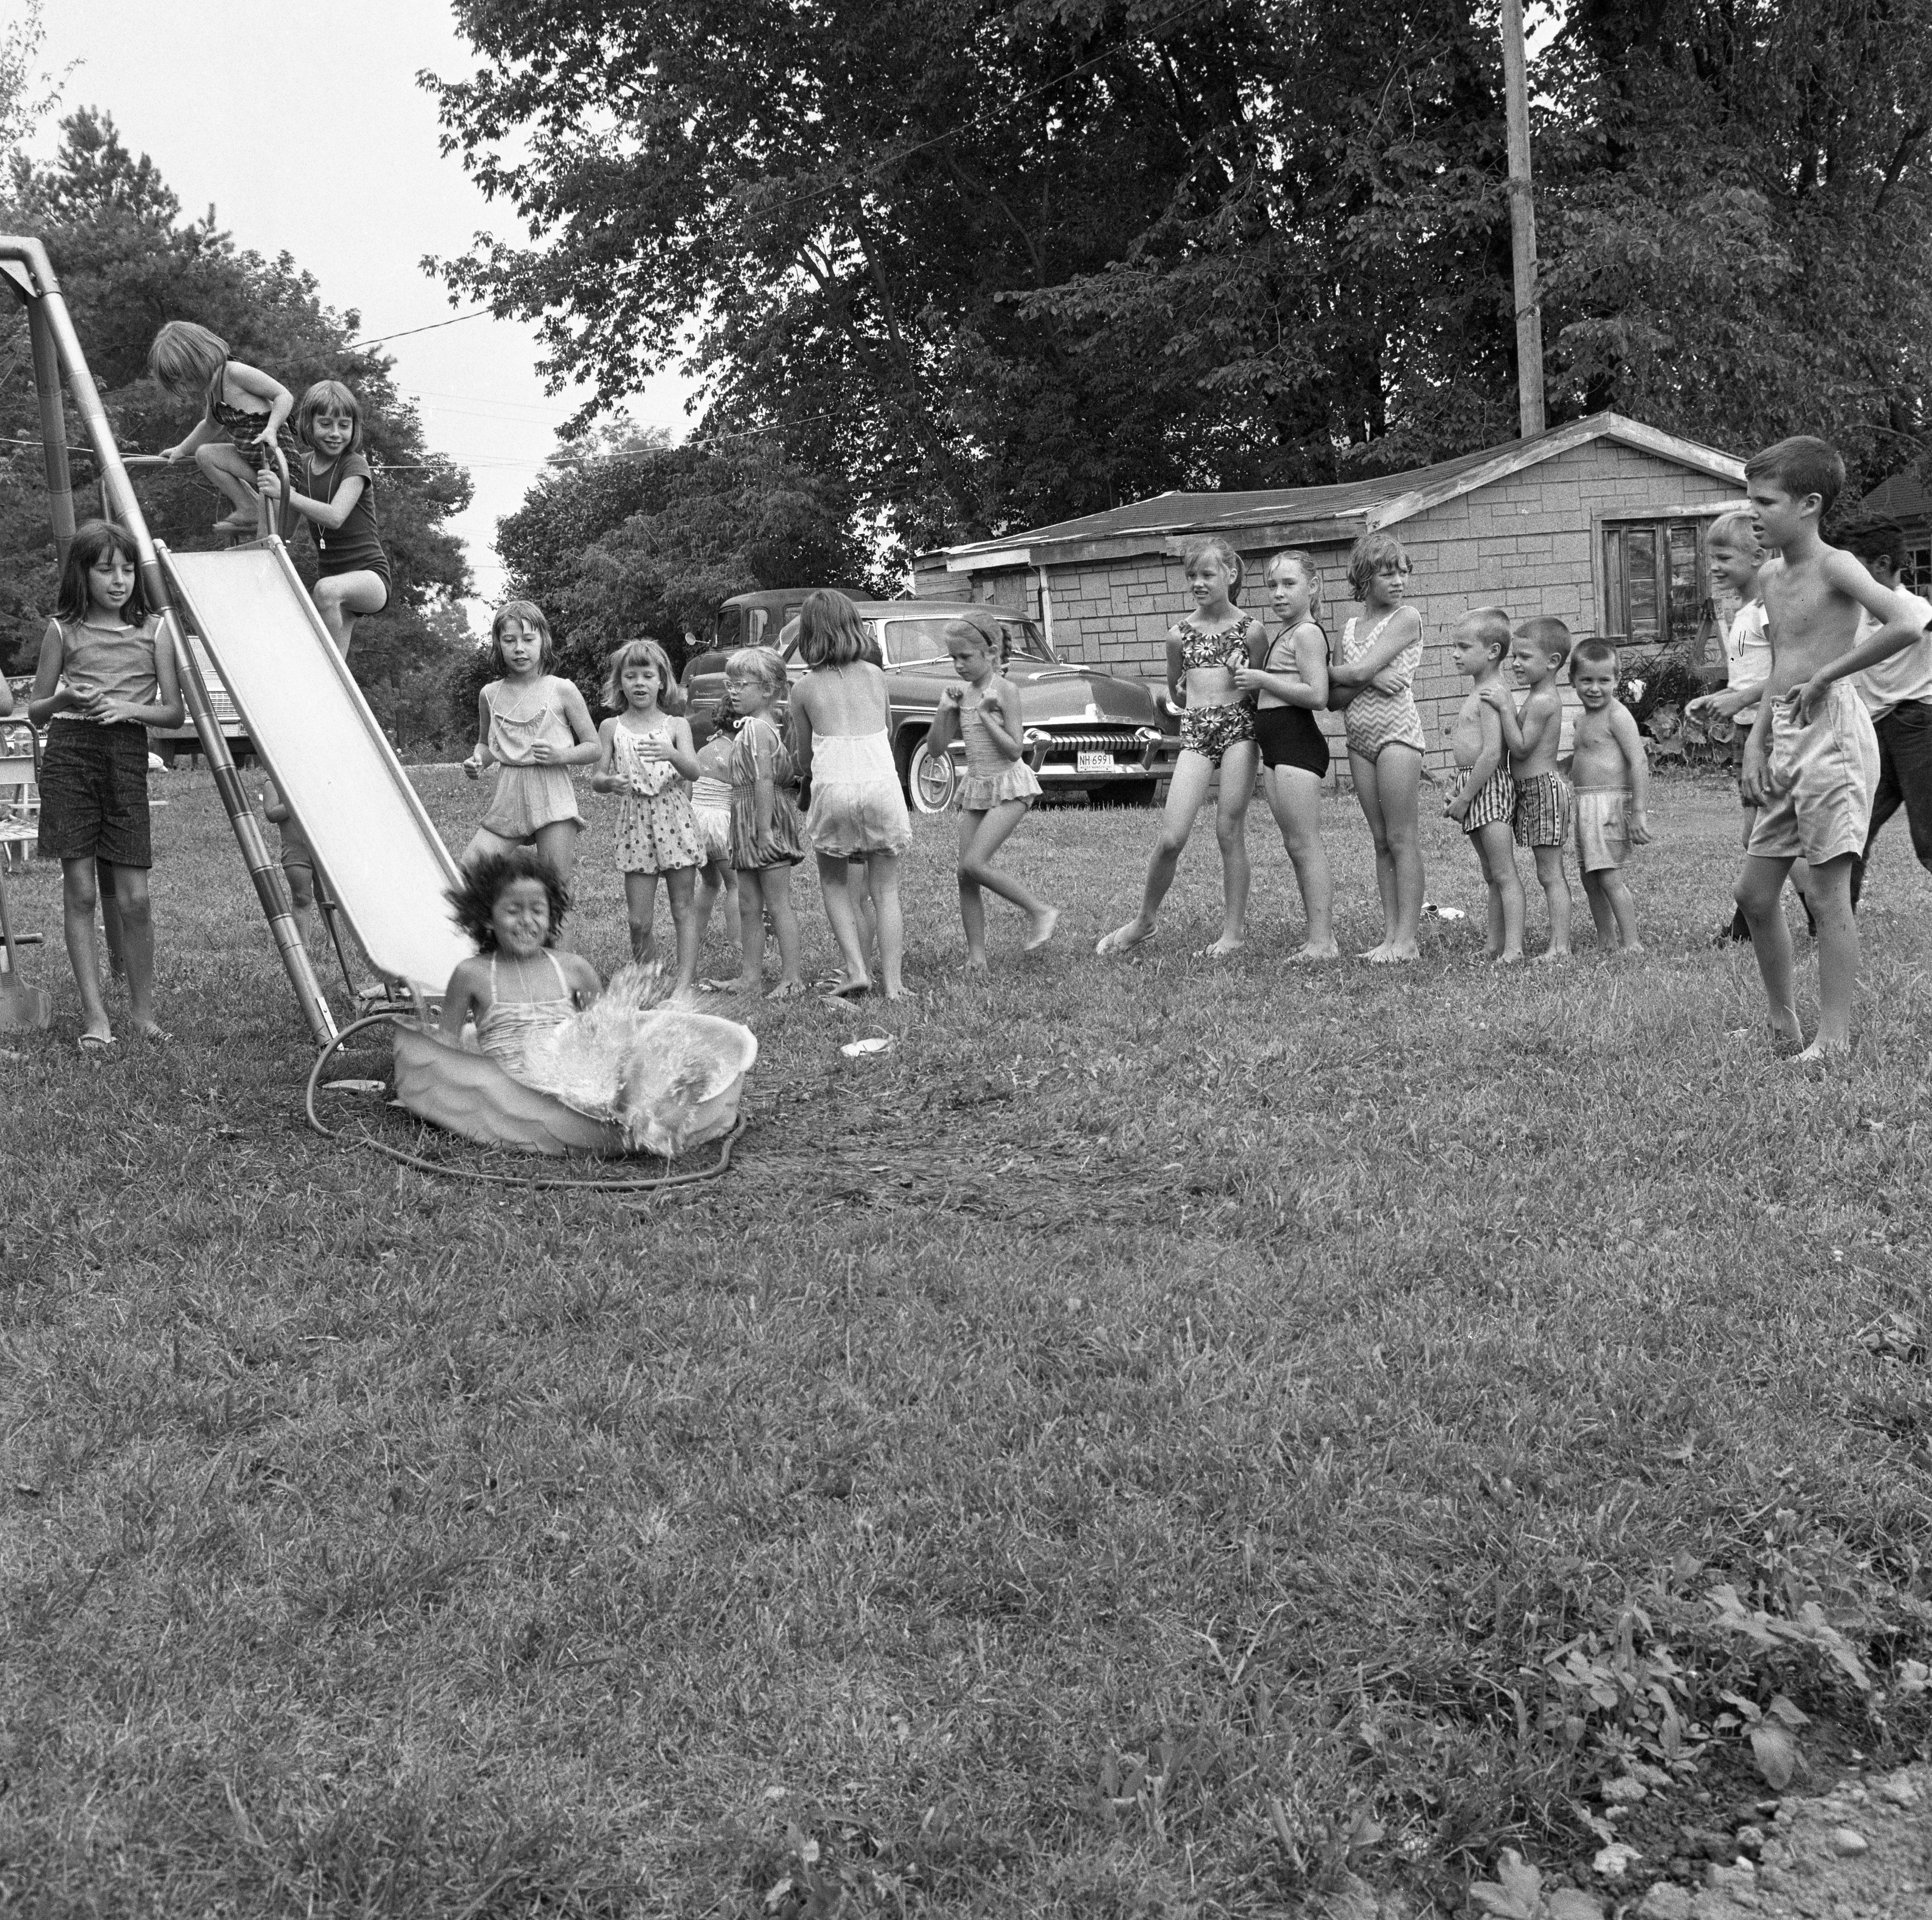 Neighborhood Children Slide Into Pool At Erwin Keppler Residence, July 1964 image